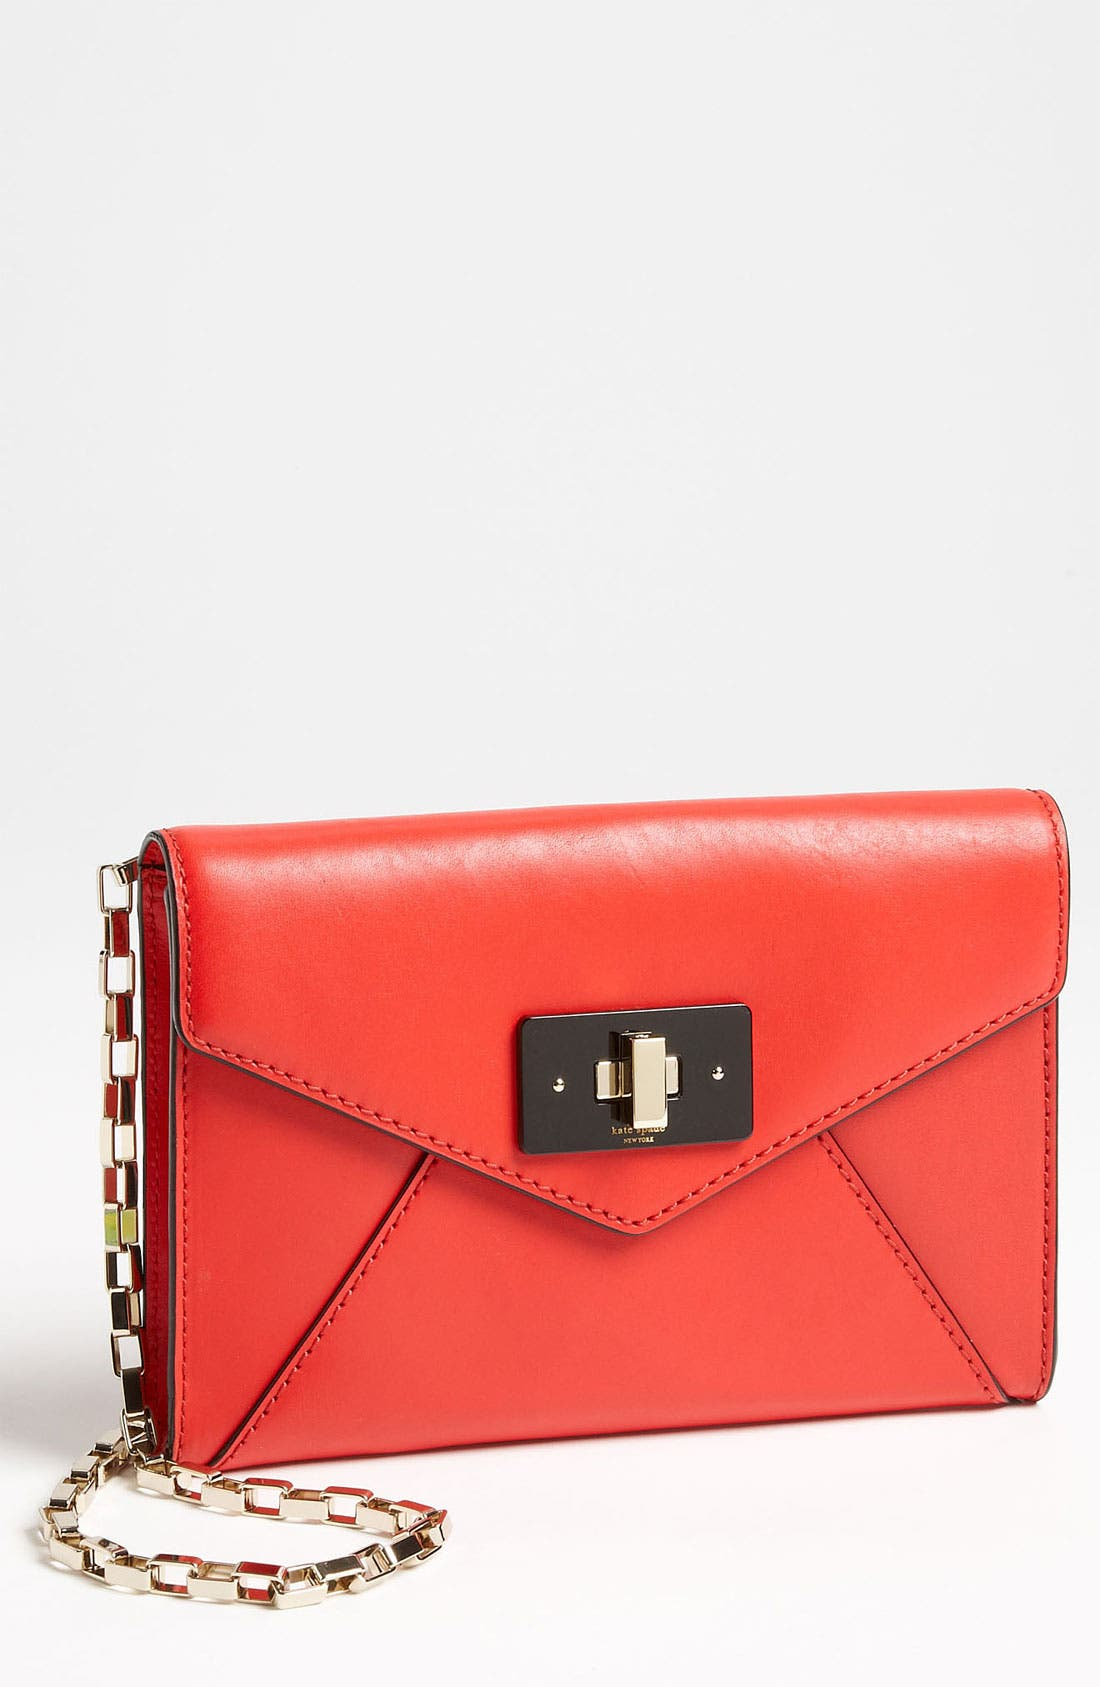 Main Image - kate spade new york 'post street - sonia' crossbody bag